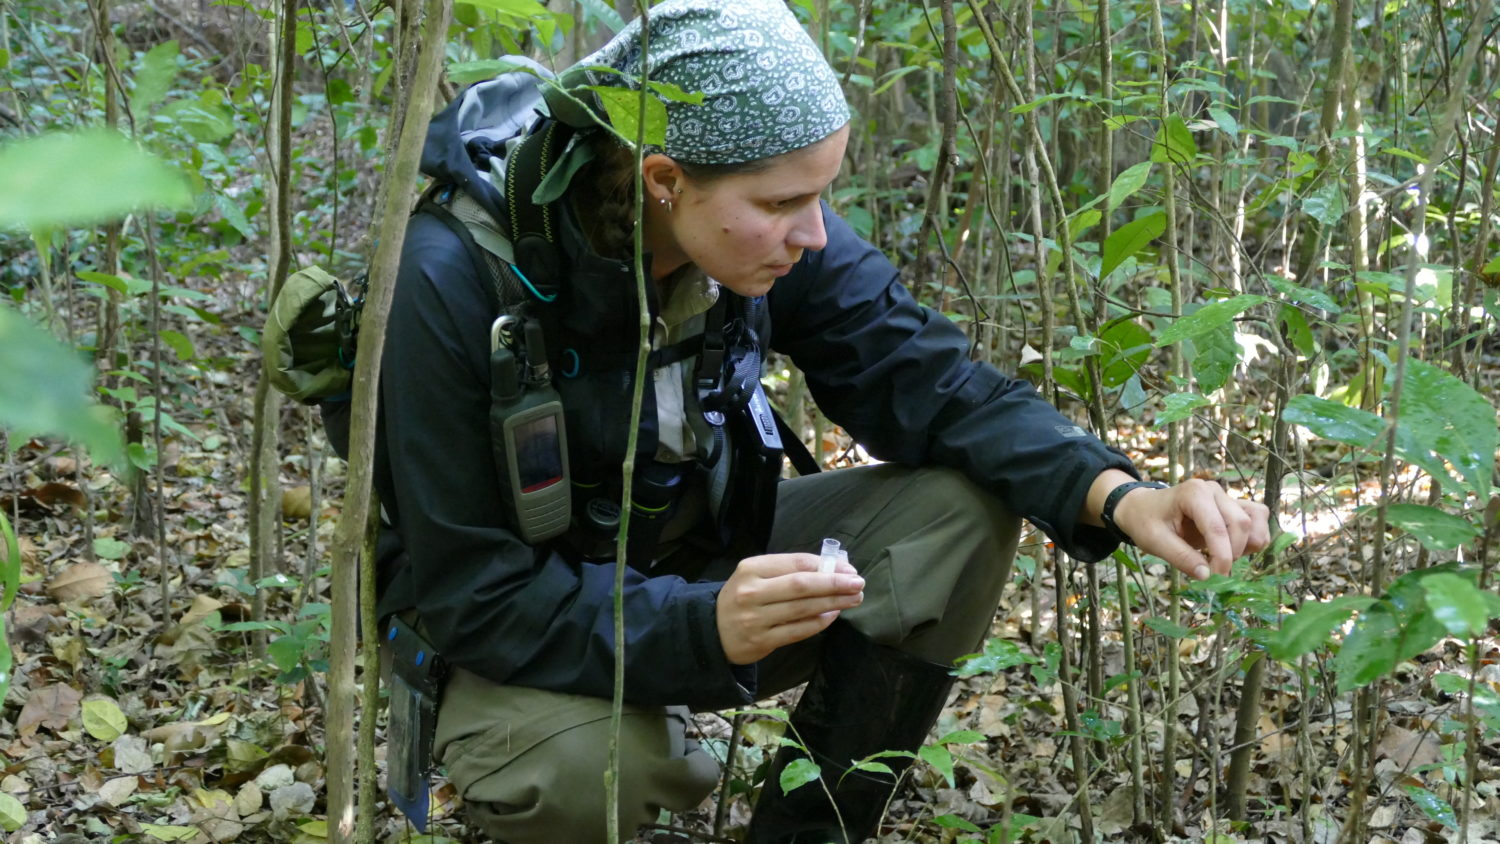 Corinne Ackermann collecting a urine sample from leaves